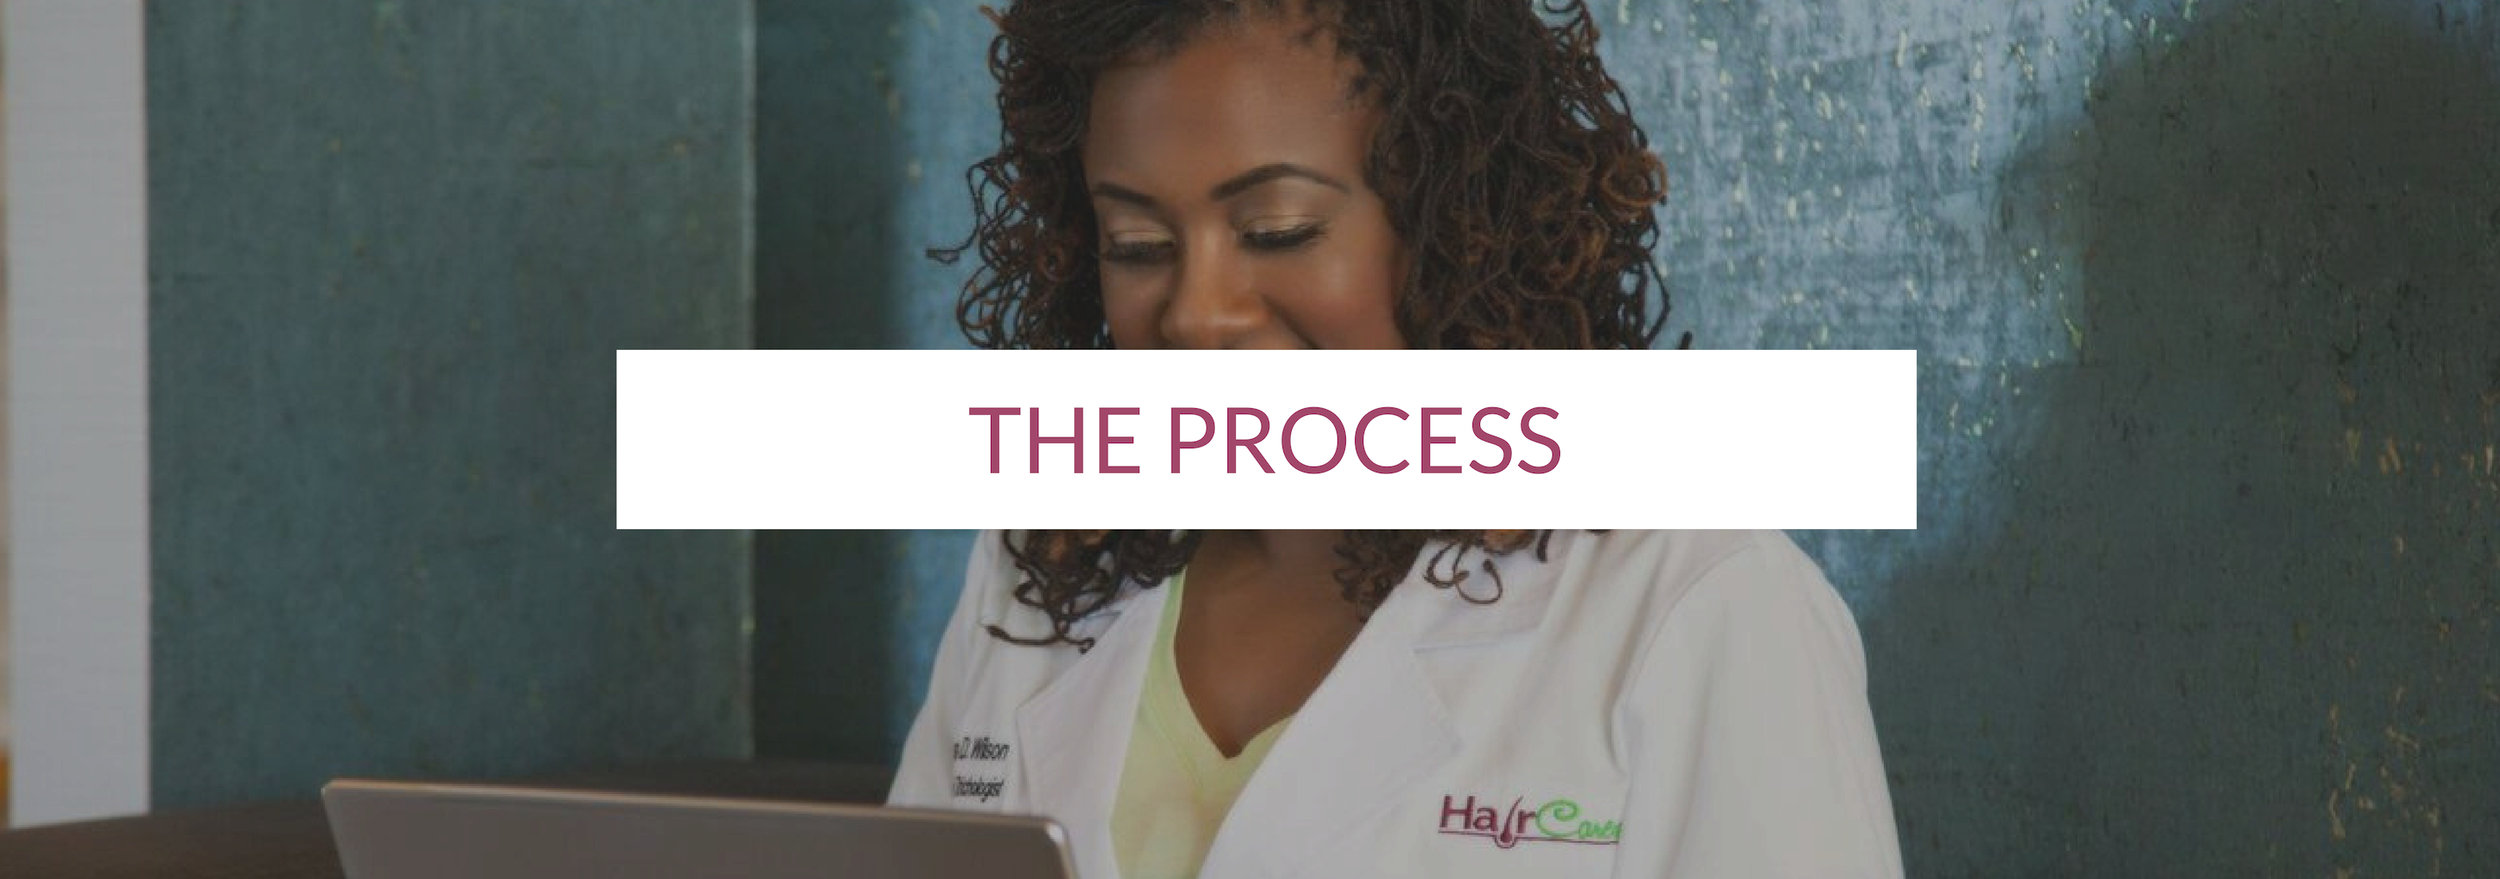 We are Hair Advocates, who provides diagnostic and treatment services for men and women experiencing scalp disorders, hair and hair loss issues. We currently serve clients with all hair types and textures in the metr.jpg